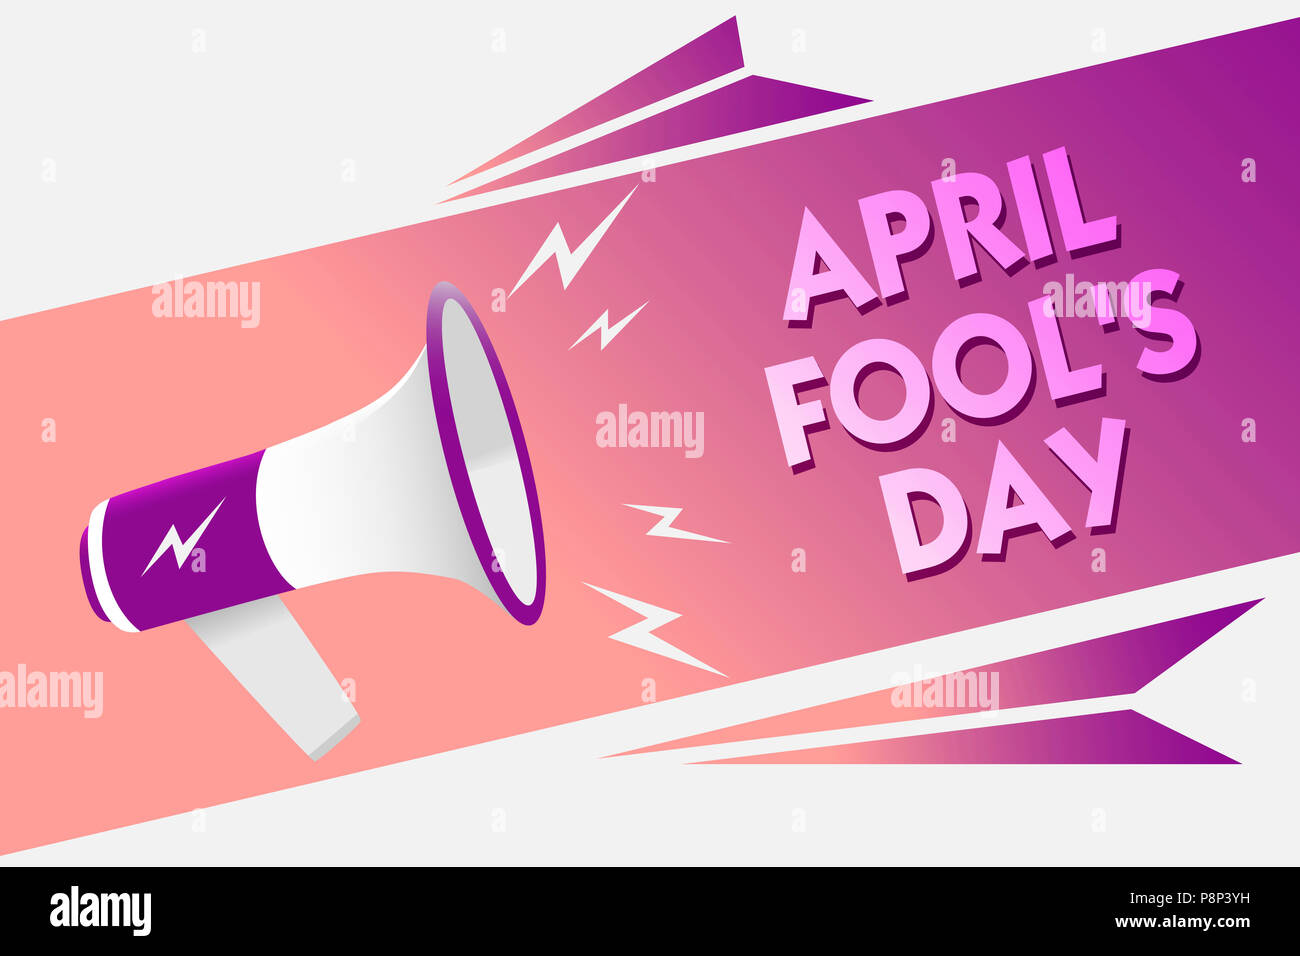 Writing note showing April Fool s is Day. Business photo showcasing Practical jokes humor pranks Celebration funny foolish Sound speaker convey messag - Stock Image